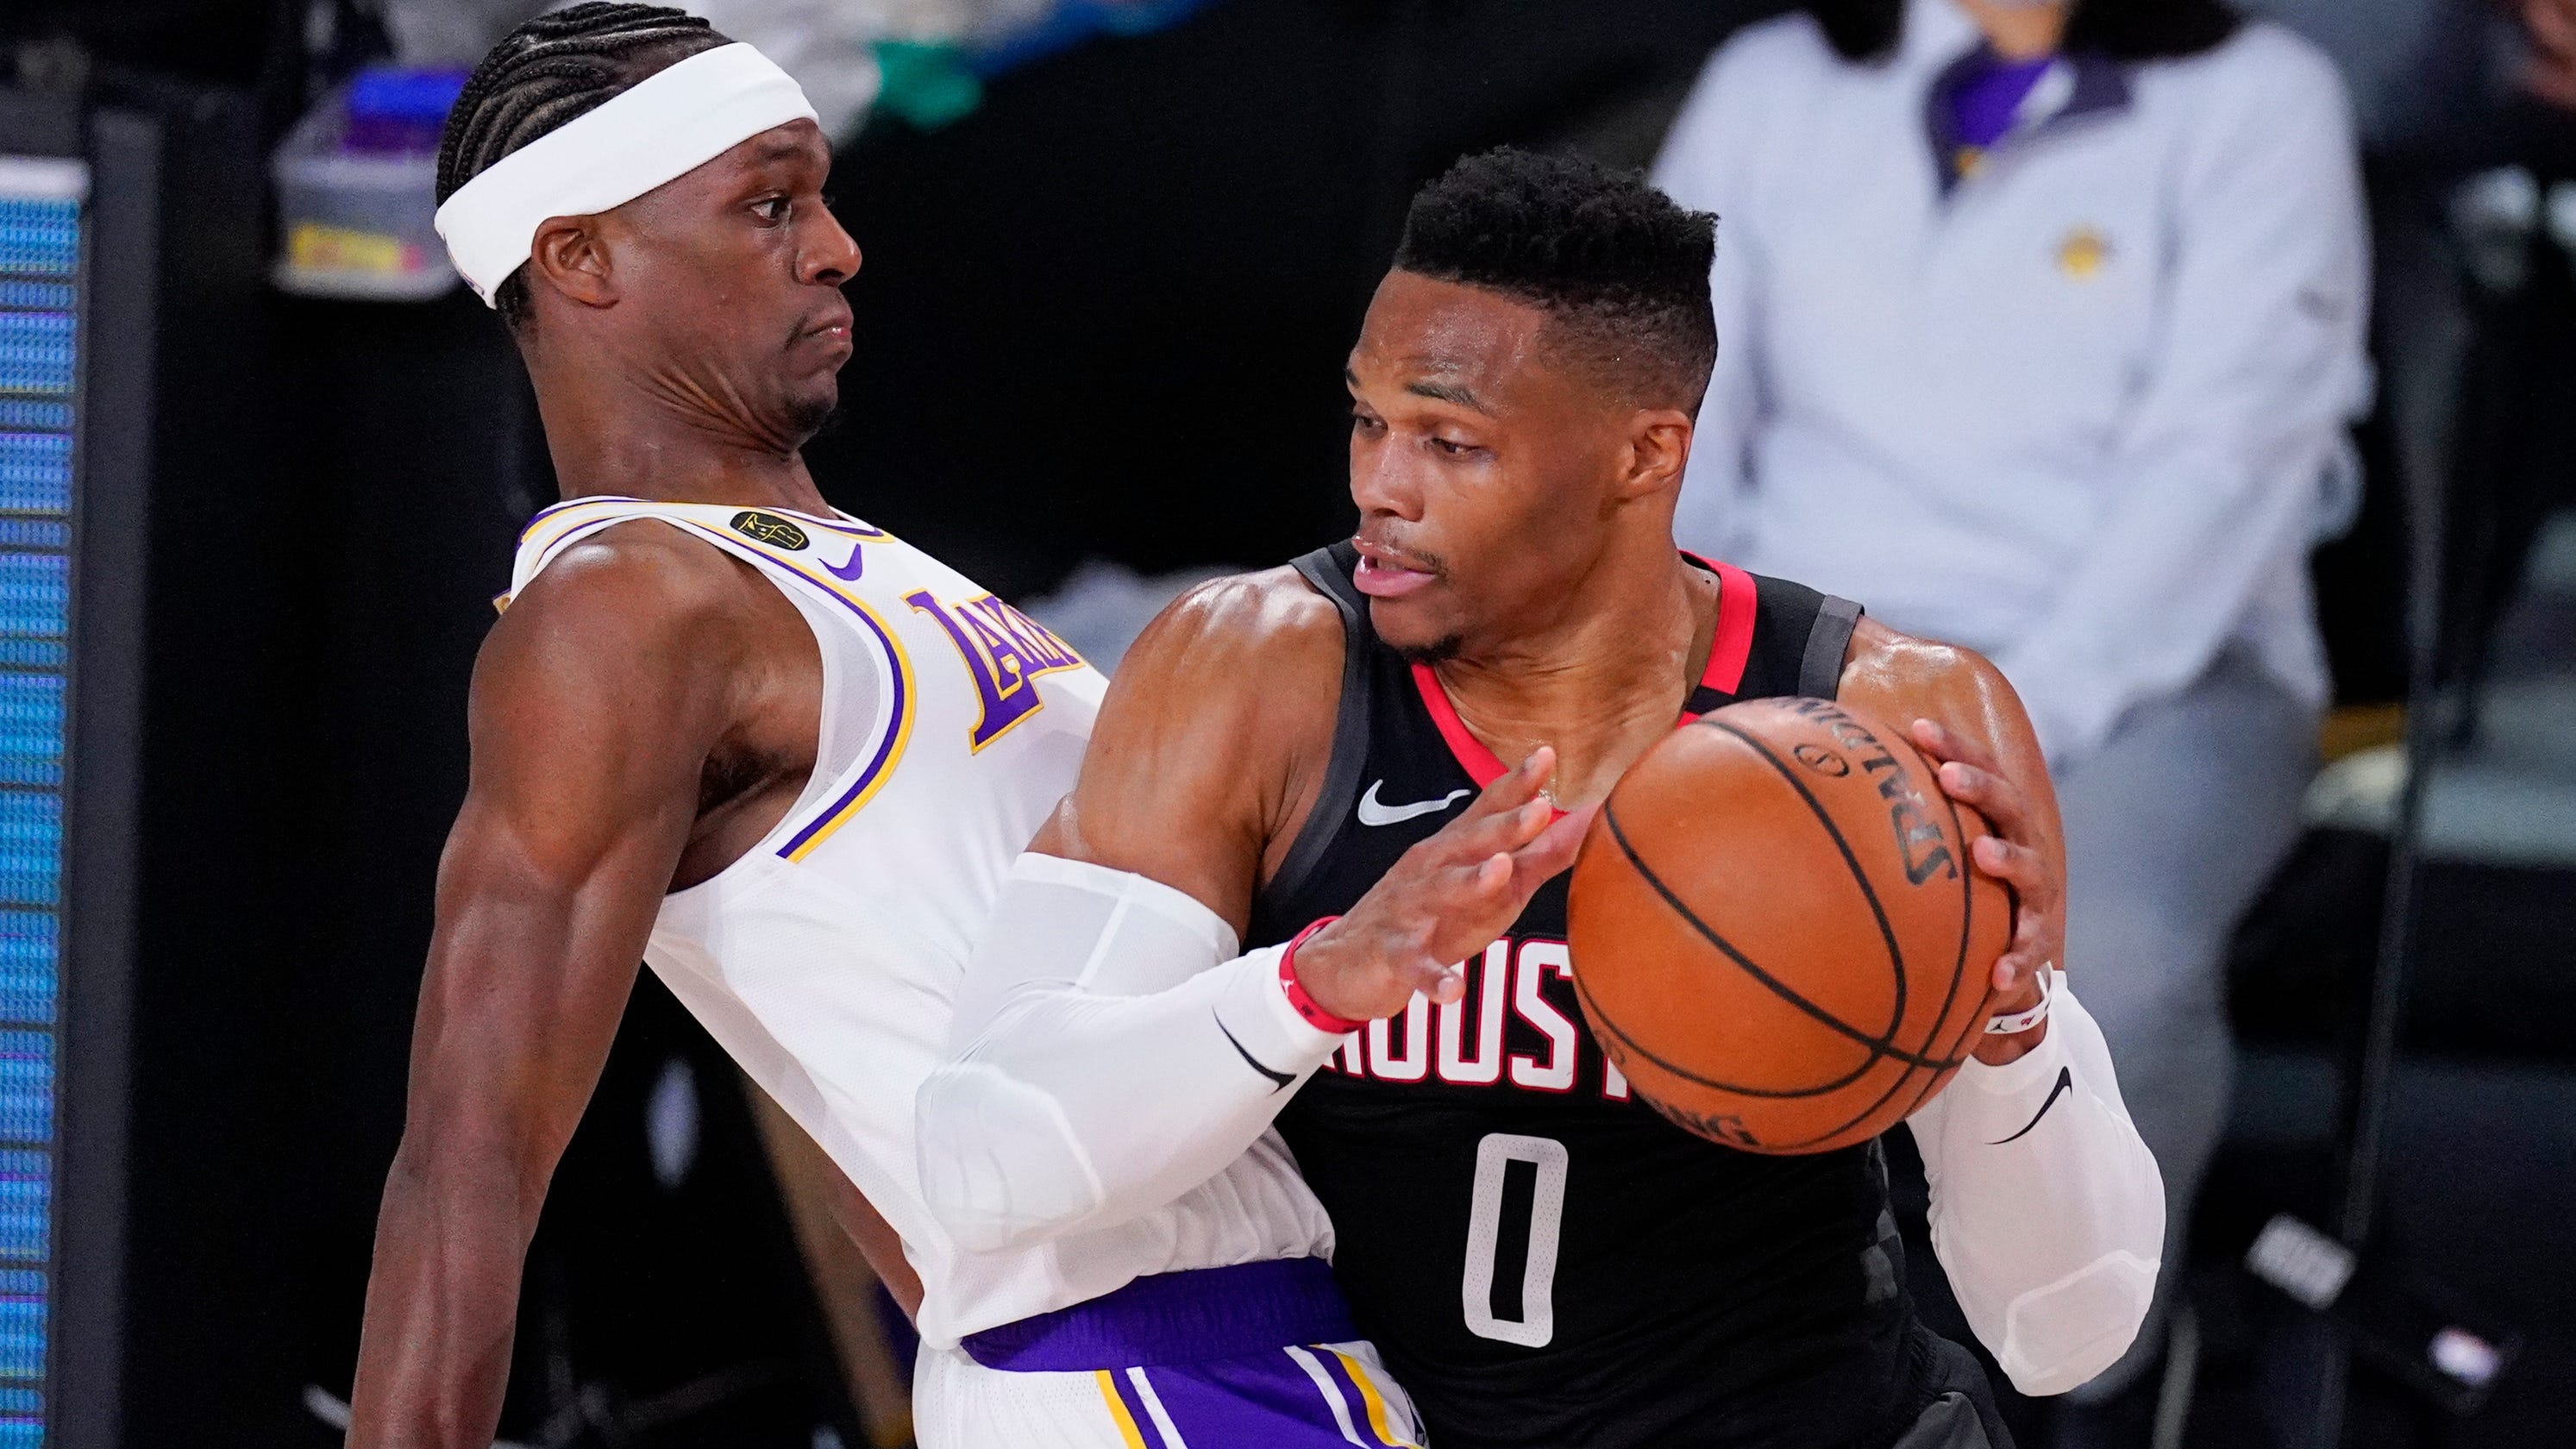 Brother of Rajon Rondo ejected from Lakers-Rockets game for jawing with Russell Westbrook